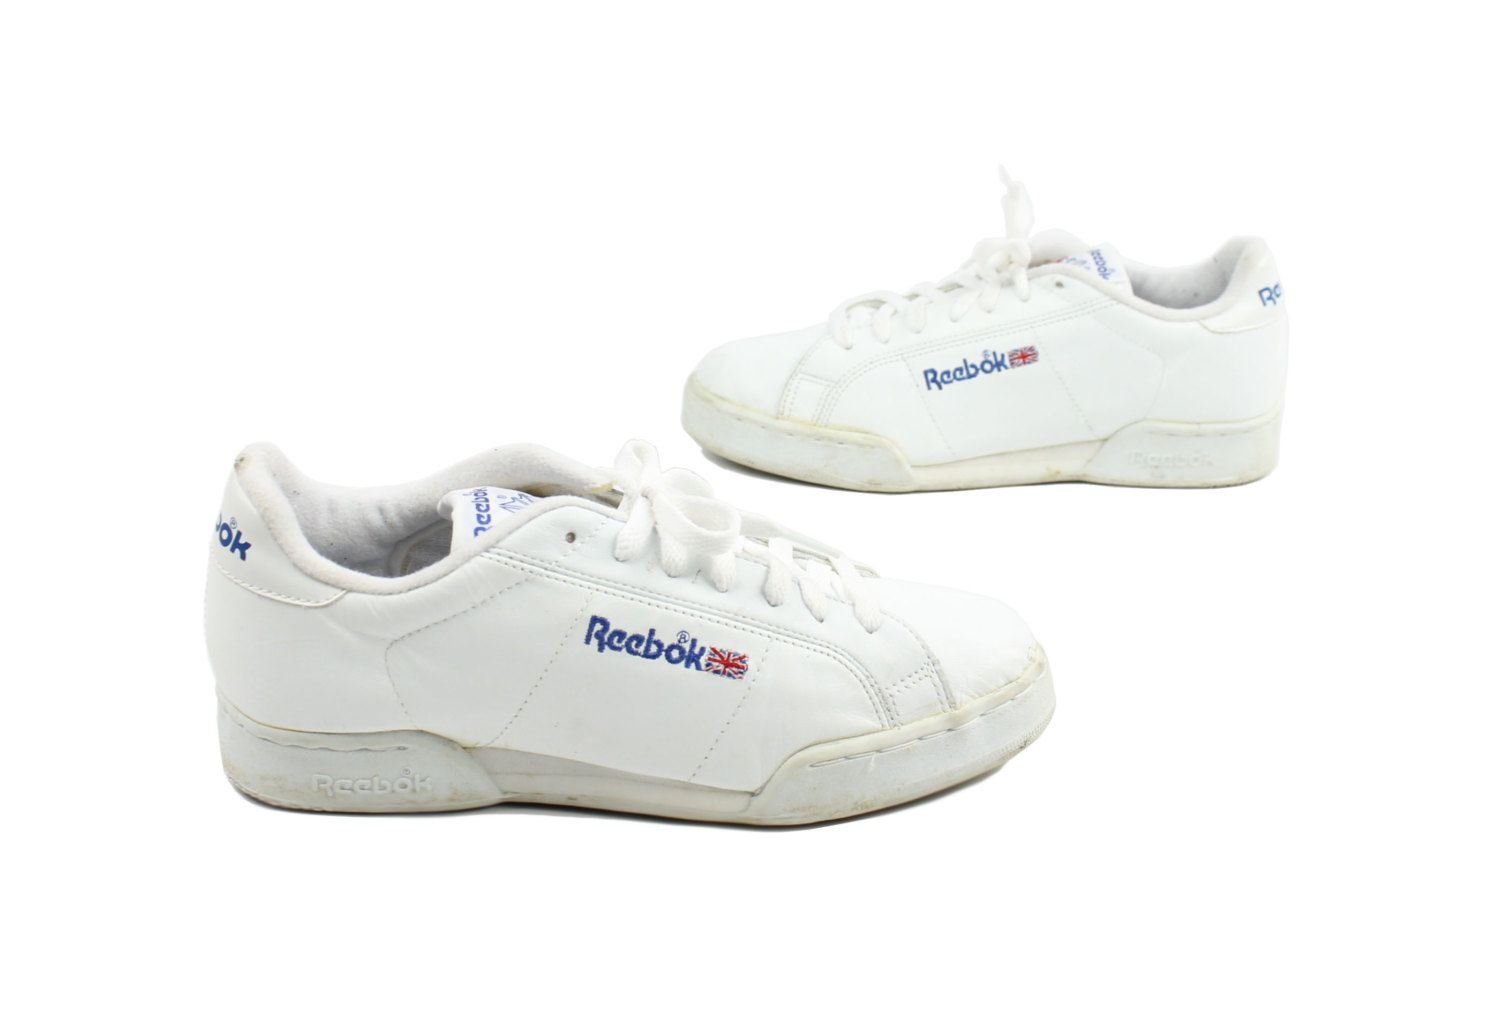 Vintage 80s REEBOK Shoes Mens Sneakers Kick Tennis Athletic Shoes 1980s  Size 8 White Leather